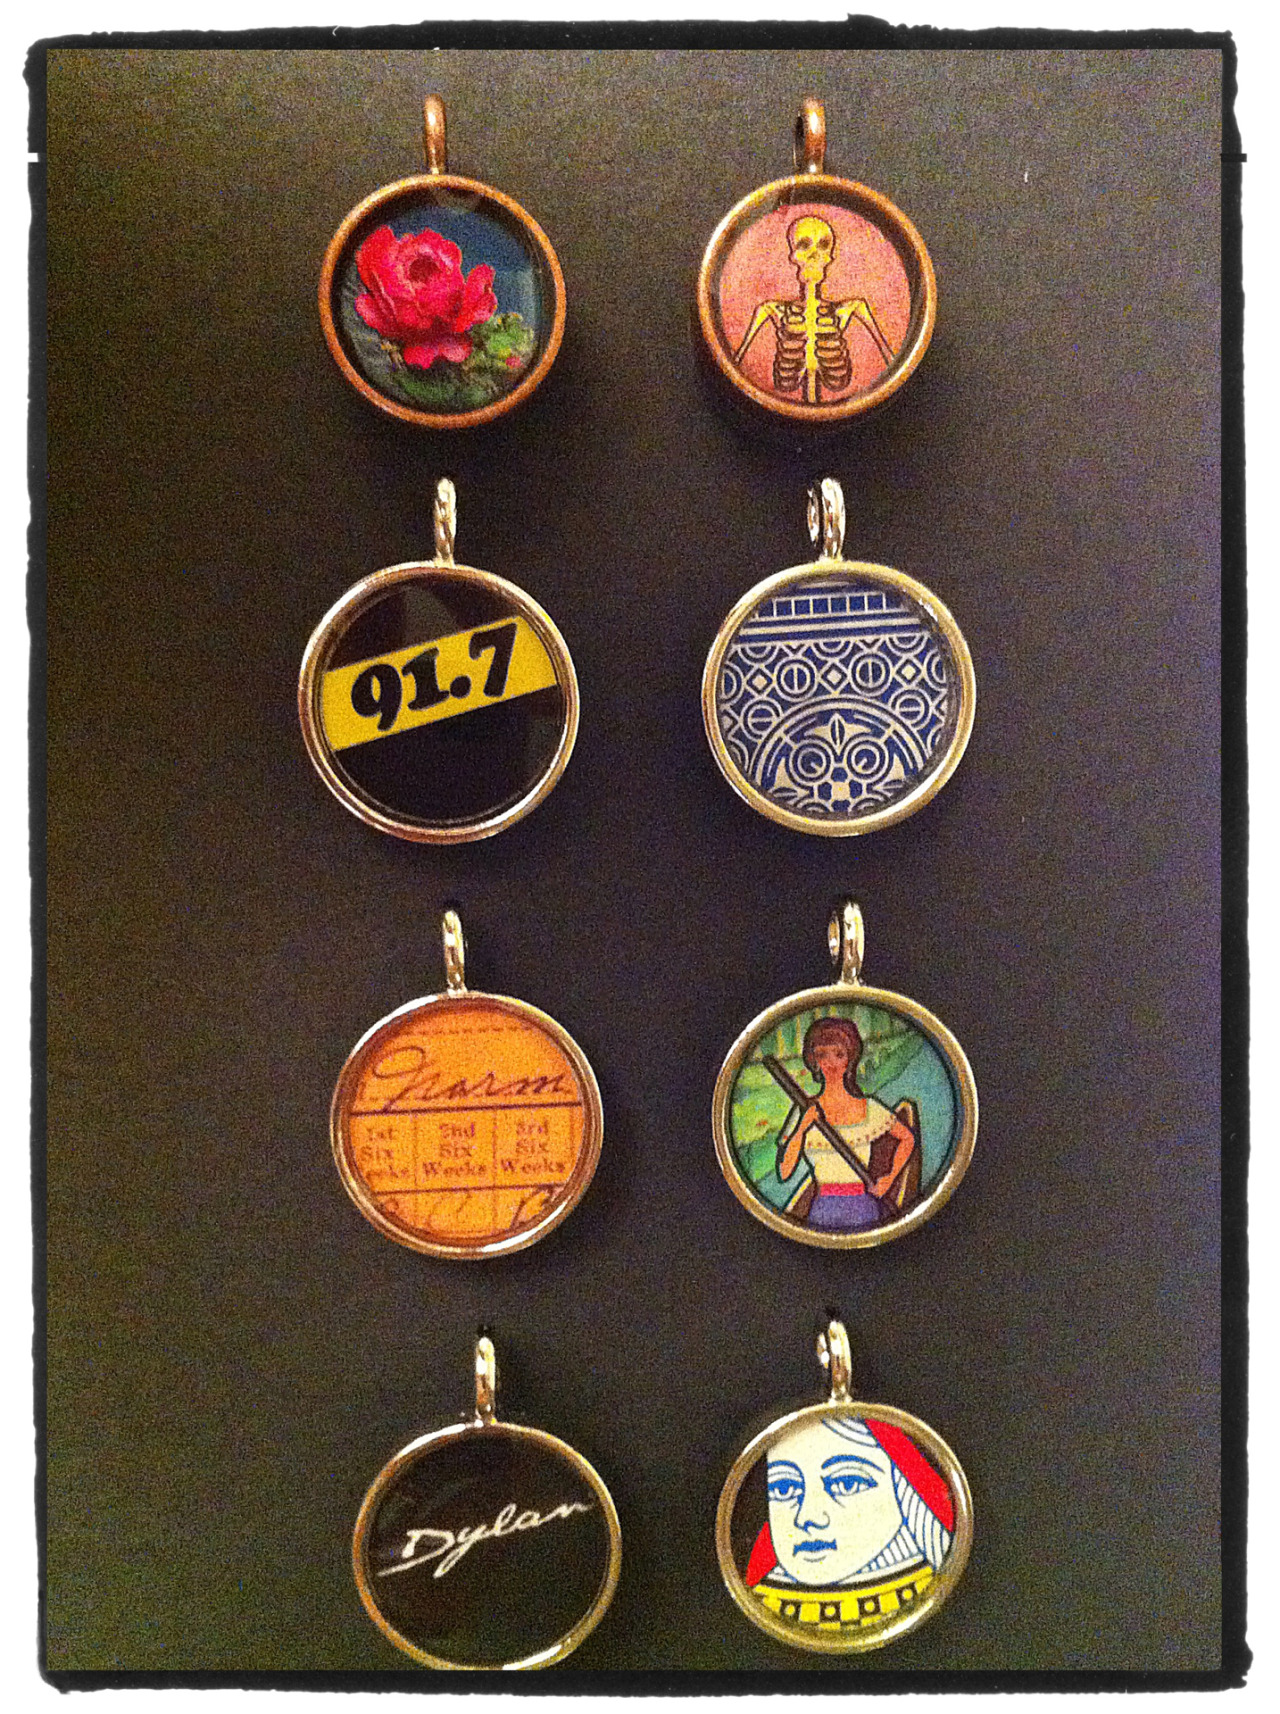 Resin pendants I made for Christmas 2012 gifts….this was my first time using resin and lawdy, it is addicting!!